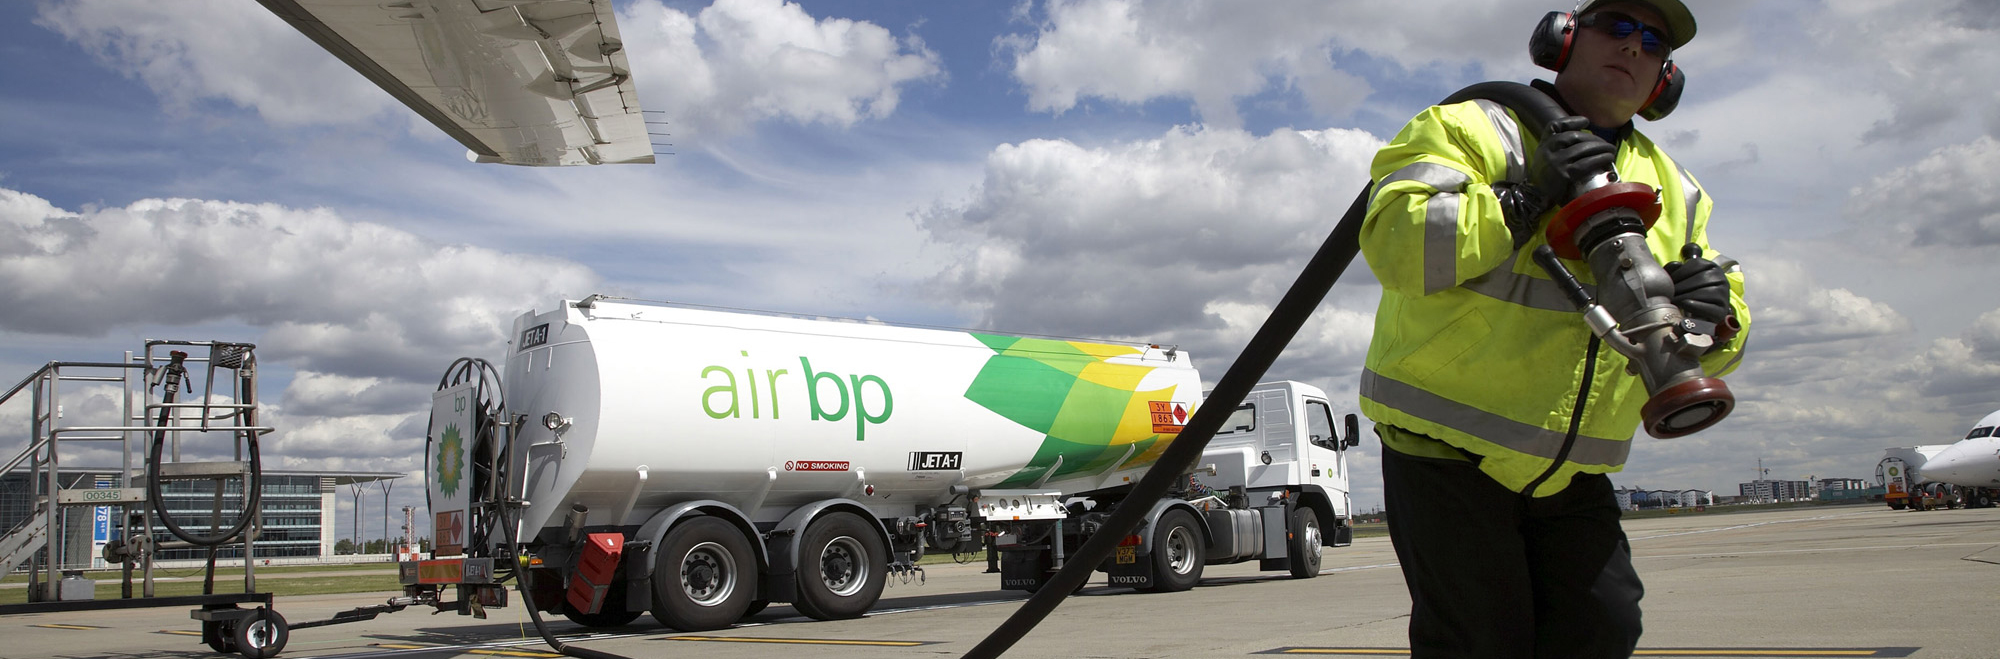 OXFORD AIRPORT | Jet A1 Fuel Price